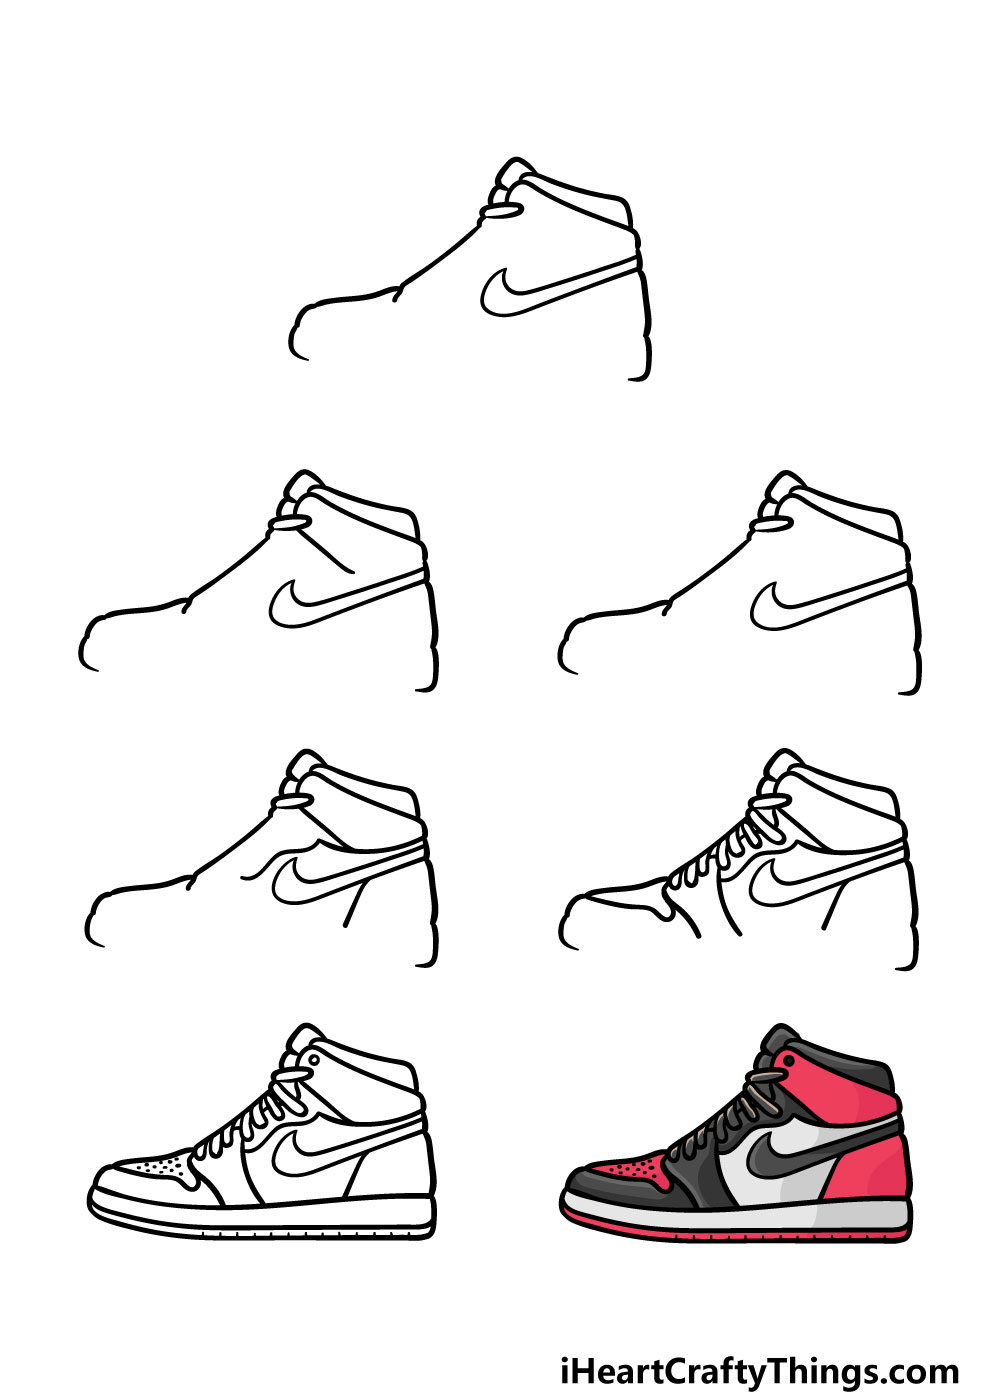 how to draw air jordan shoes in 7 steps